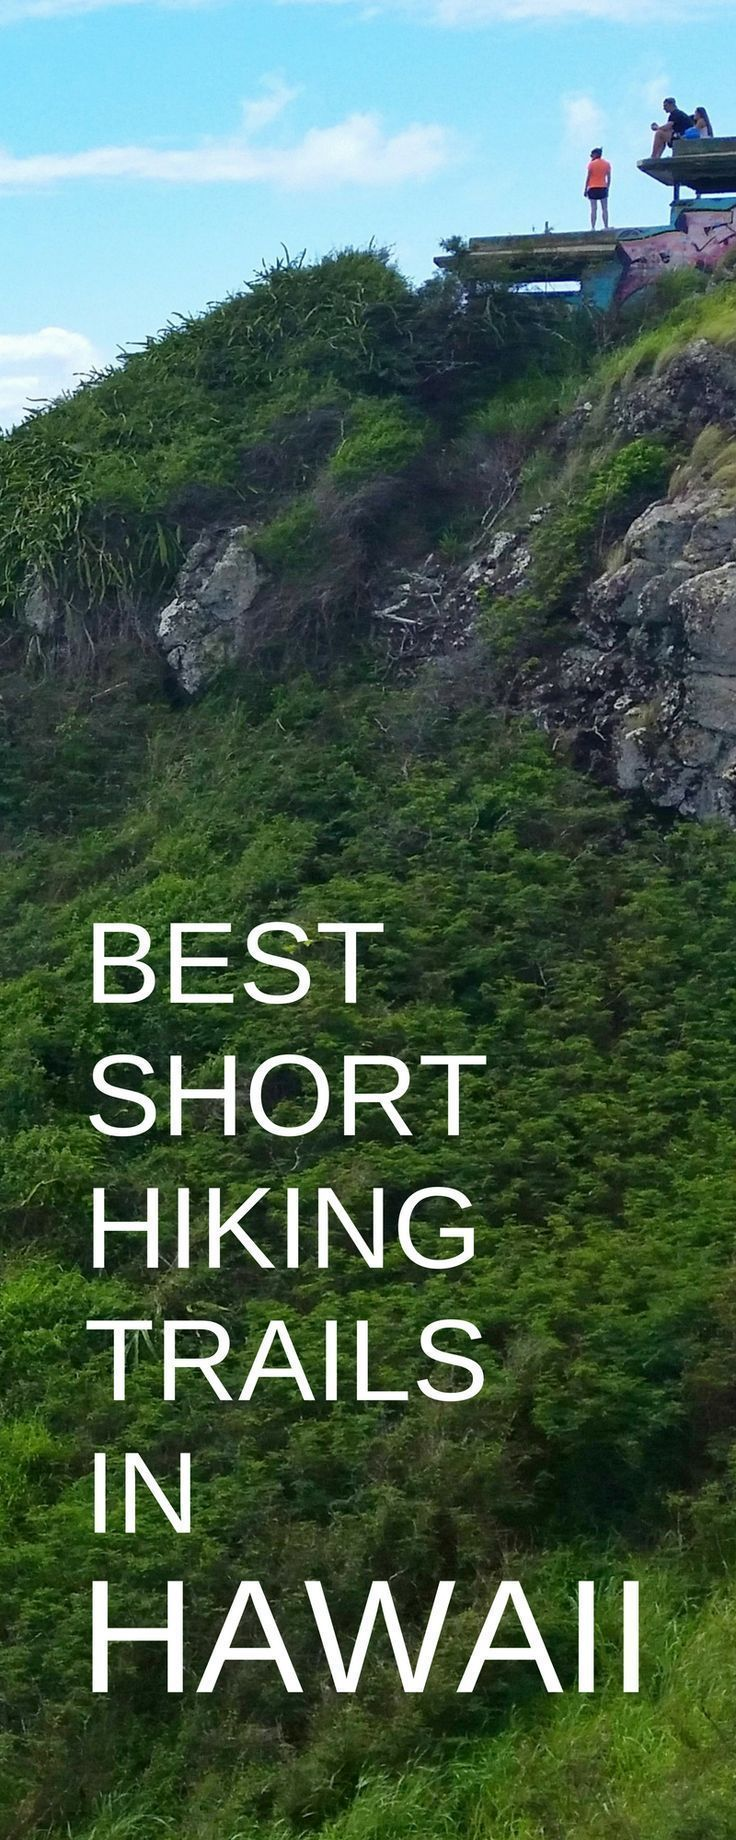 Oahu Hikes Travel Guide Best Short Hikes on Oahu map list